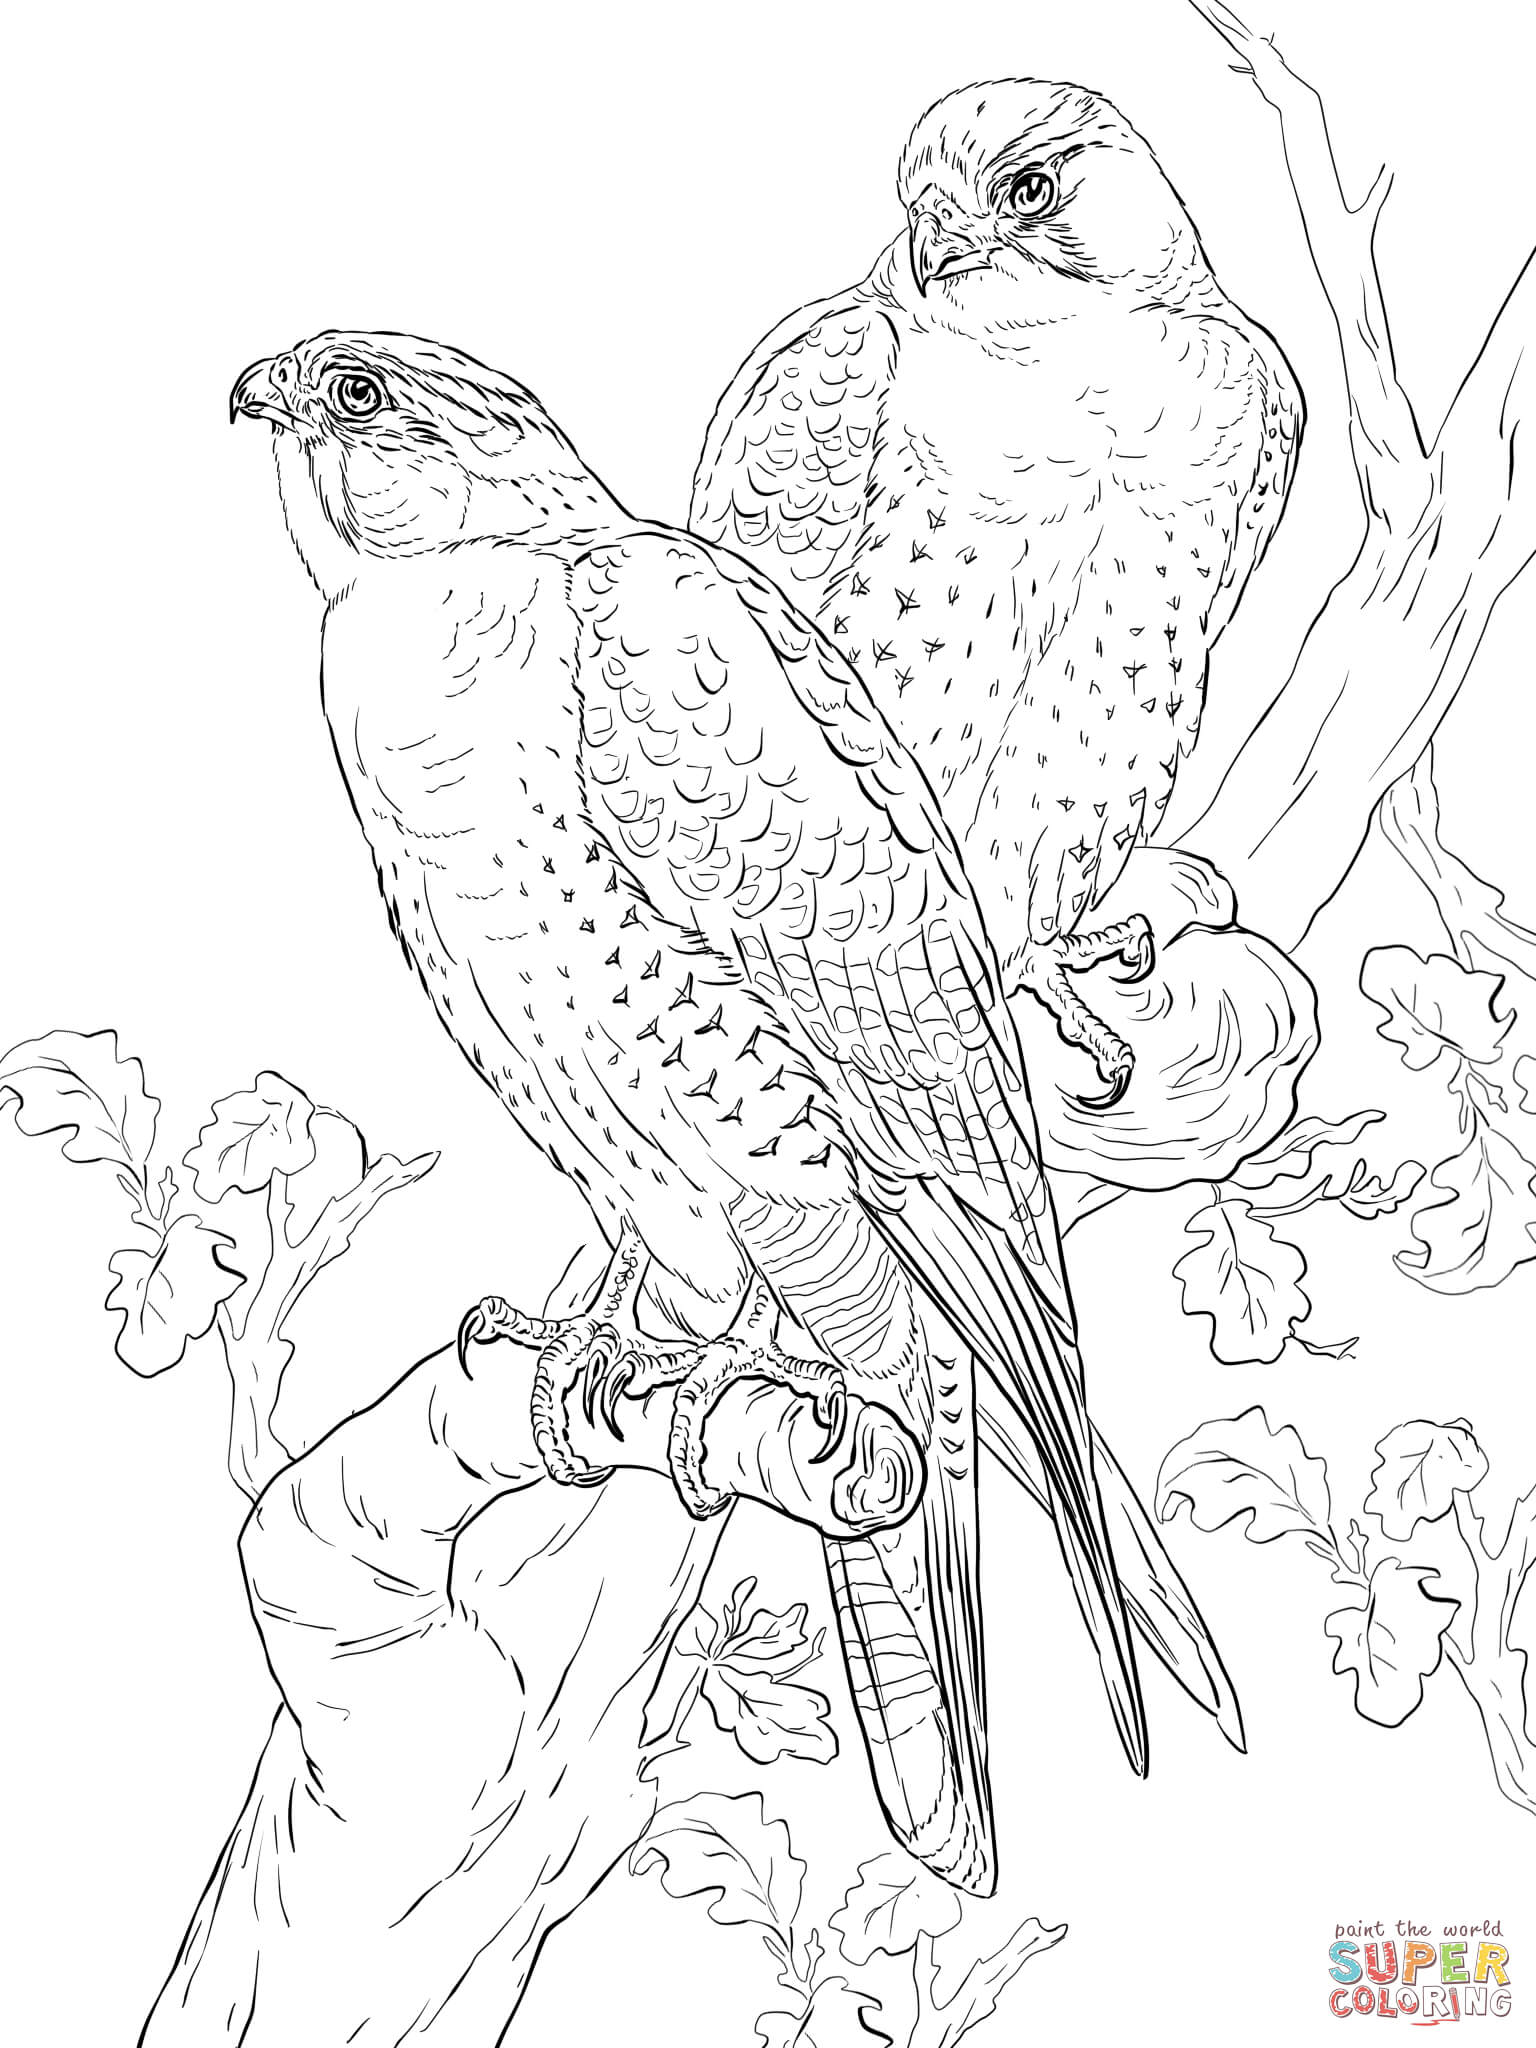 Prairie Falcon coloring #16, Download drawings